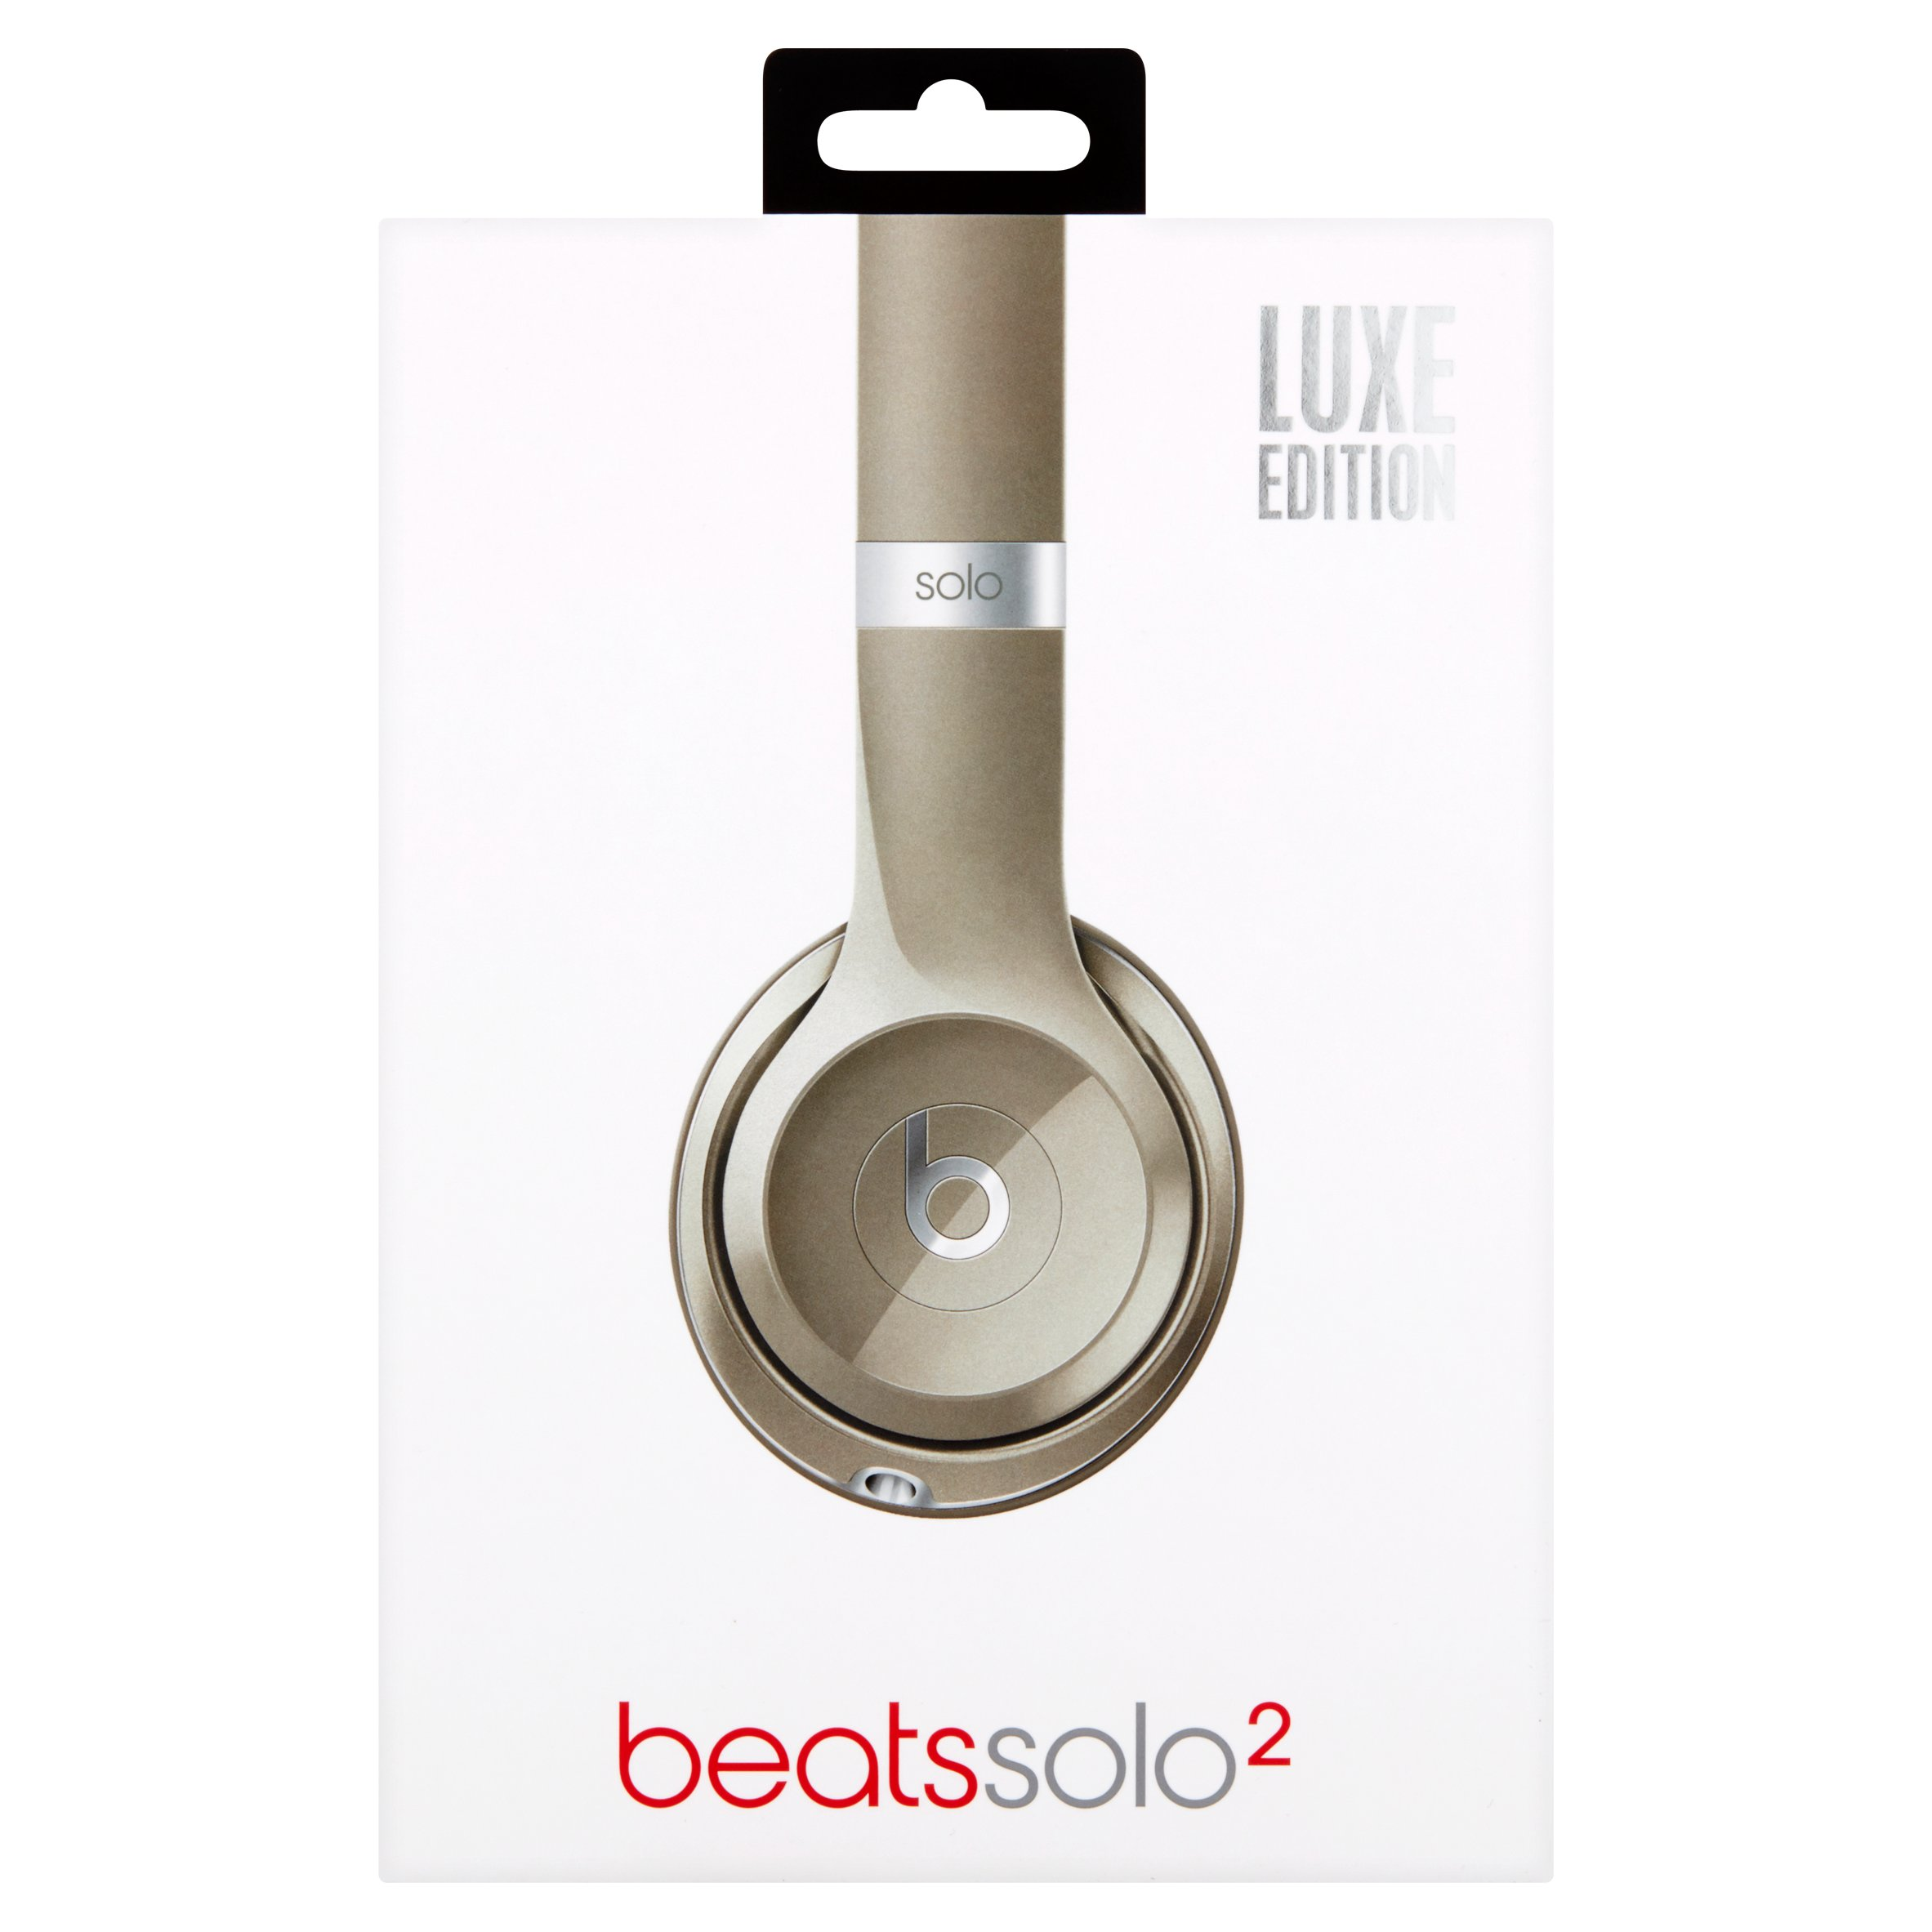 Beats by Dr. Dre Solo2 Luxe Edition Headphones by Beats by Dr. Dre